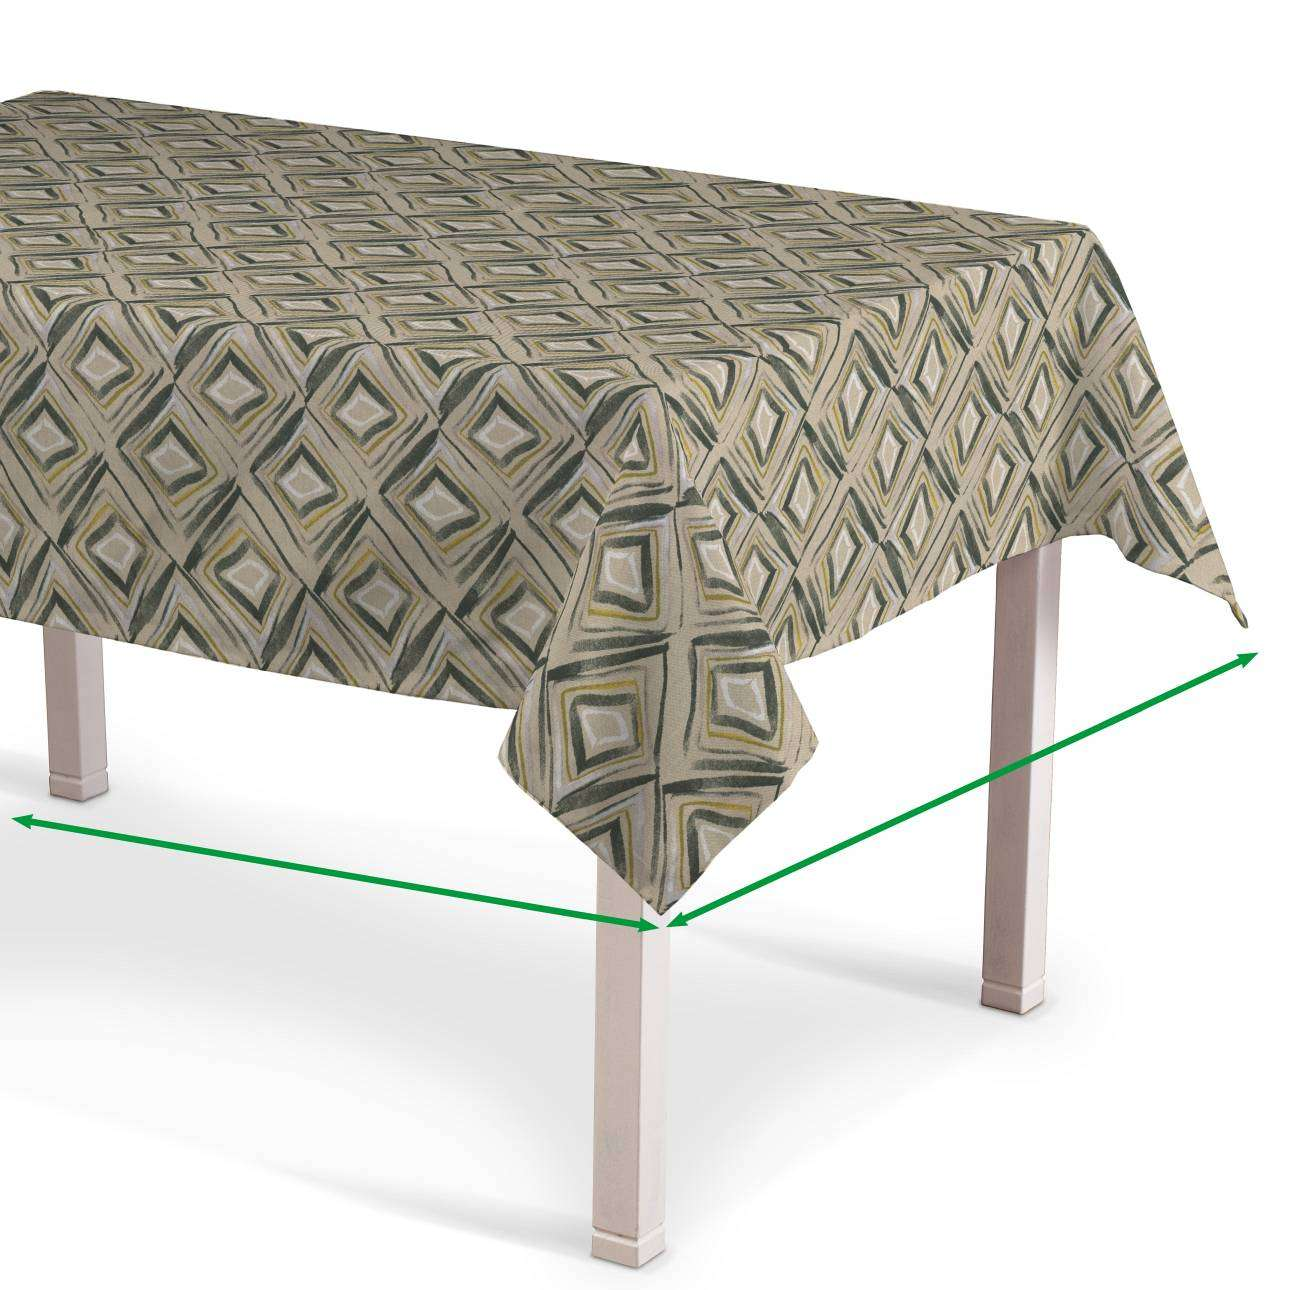 Rectangular tablecloth in collection SALE, fabric: 140-46